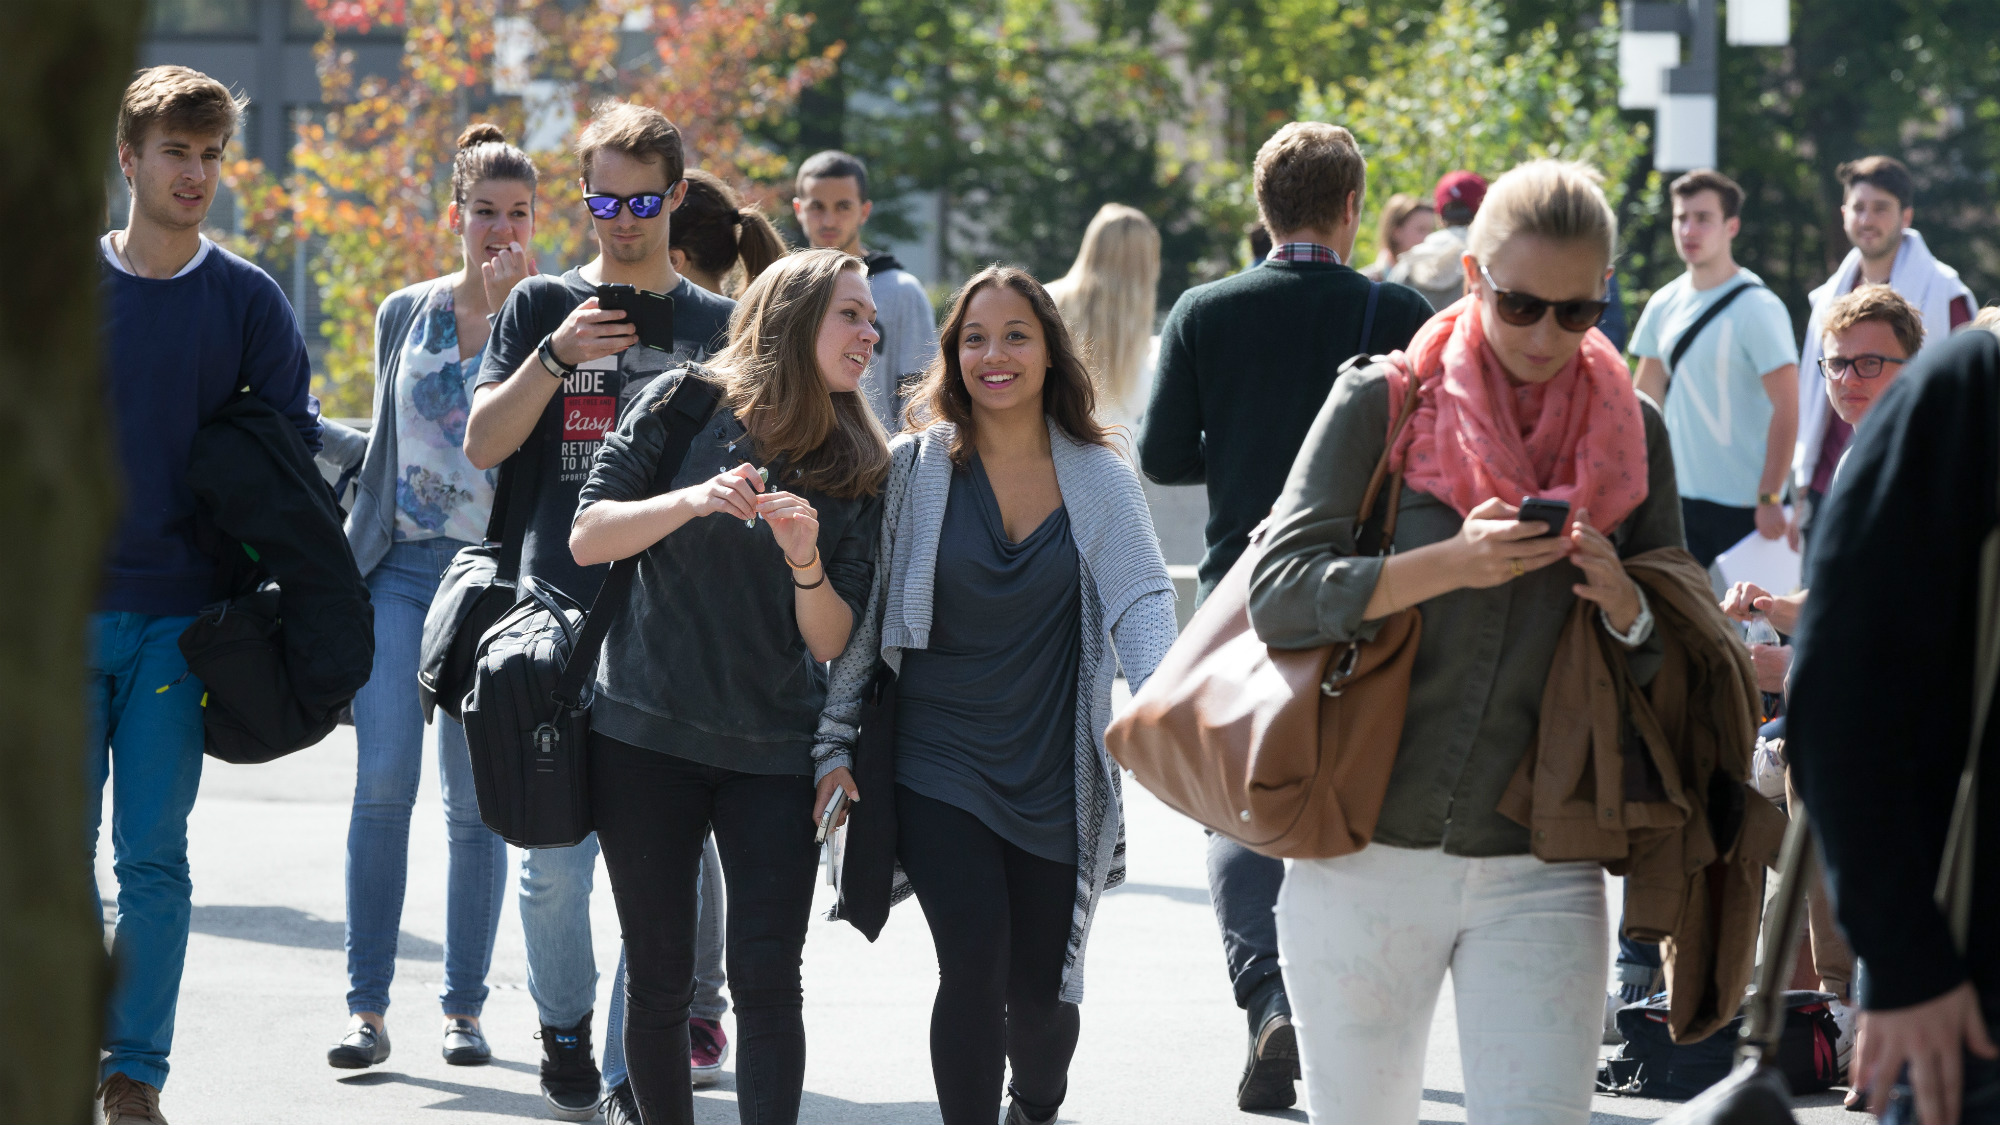 Students on their way to the University of St.Gallen (HSG)